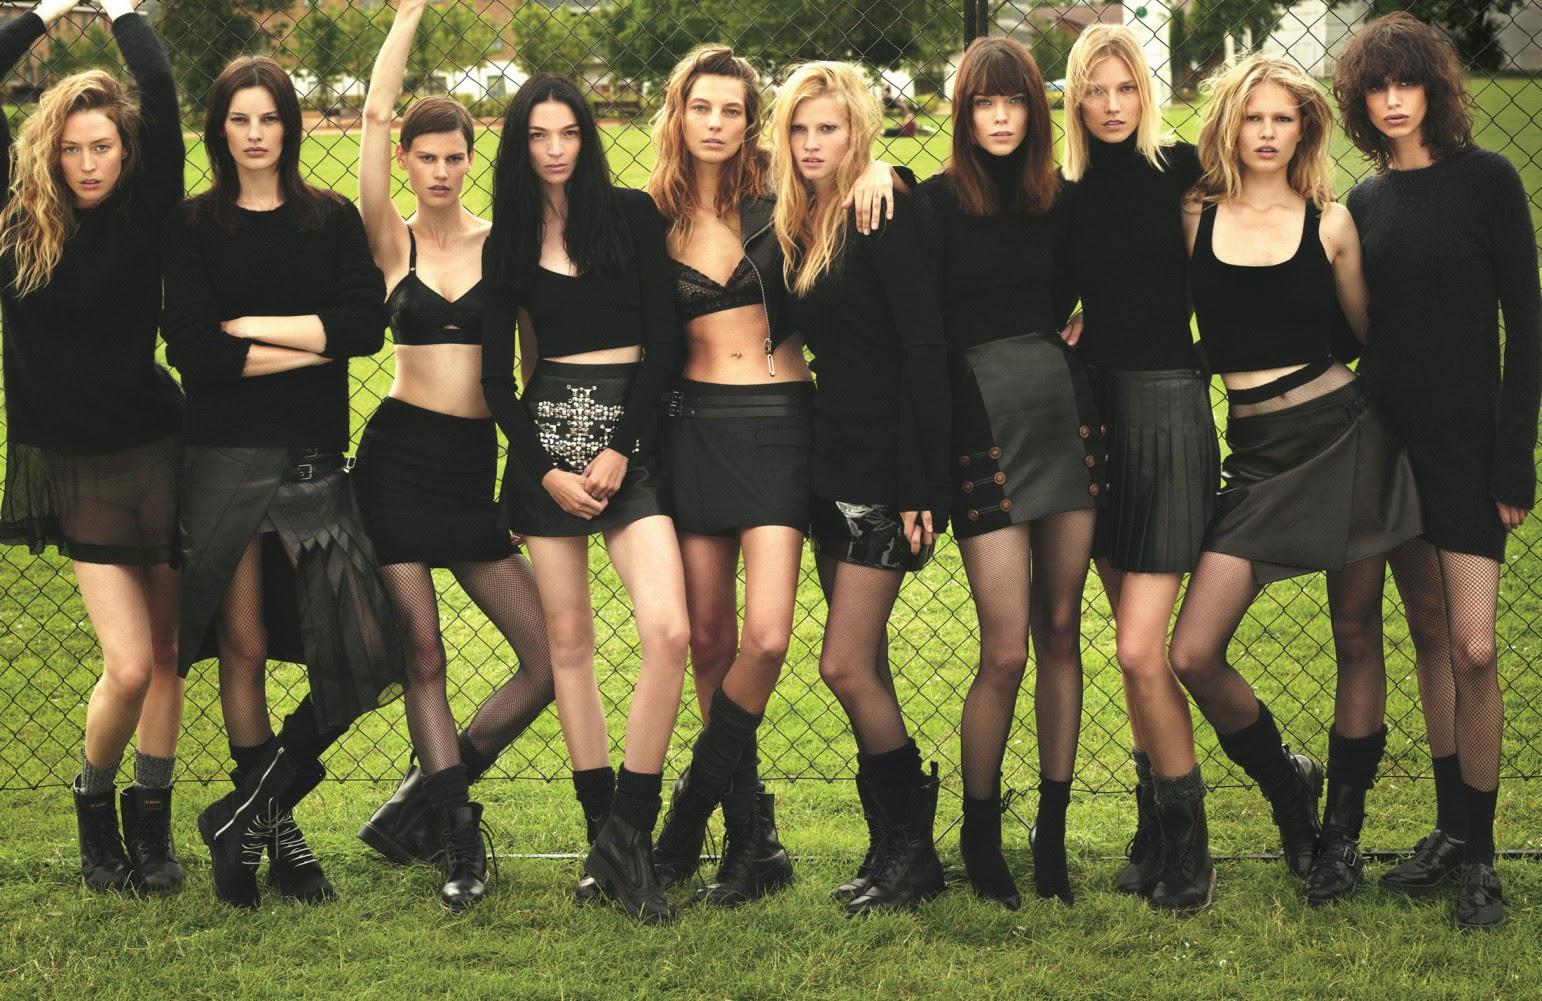 Super normal super models by Mert & Marcus for W Magazine